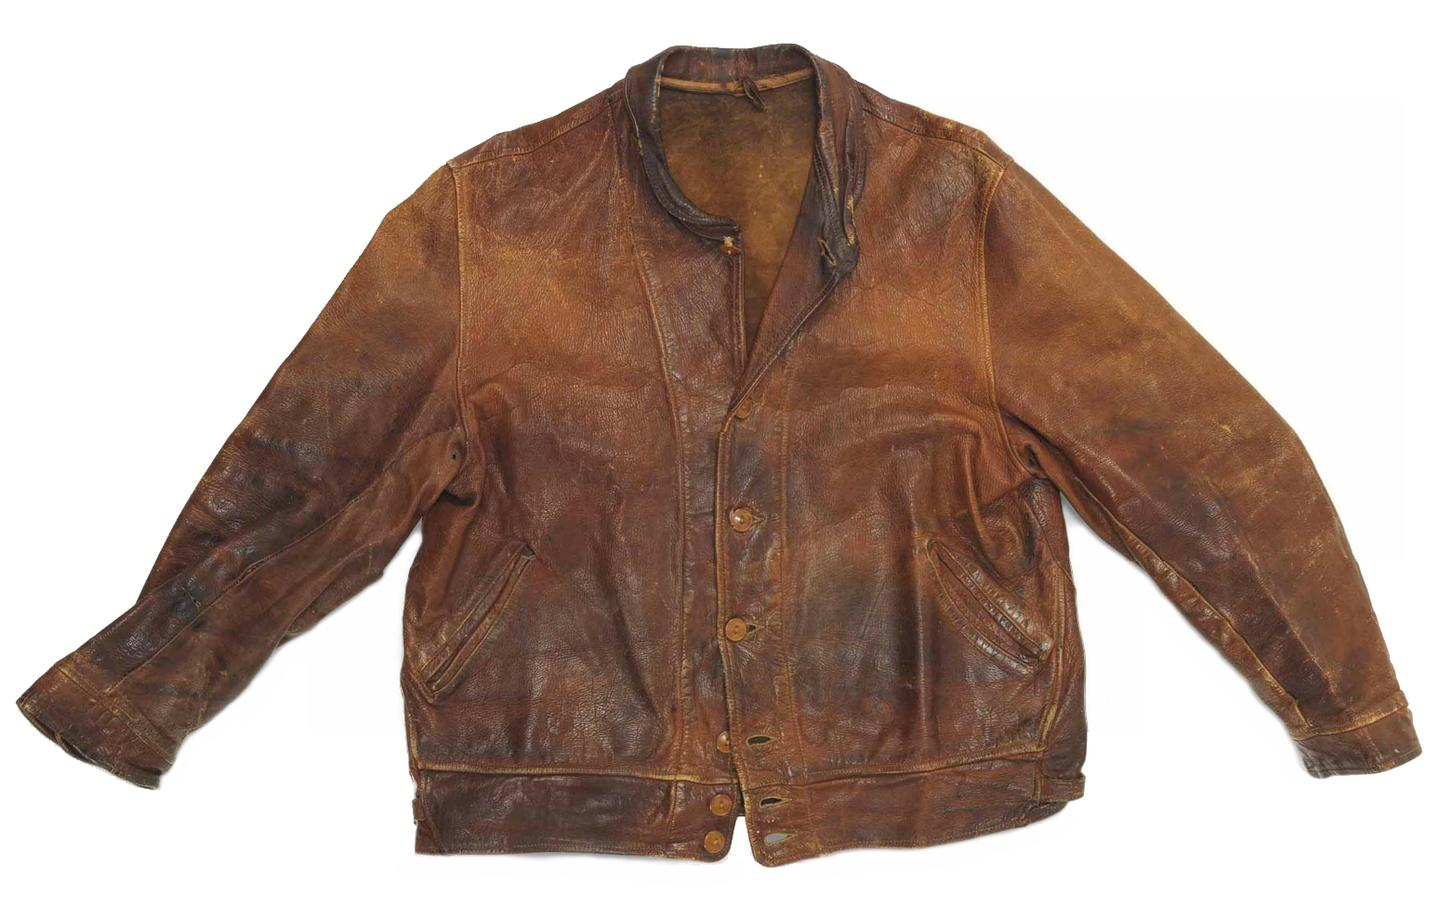 Einstein's leather jacket doubled it's auction estimate of £40,000 to £60,000, selling for USD$145,974.